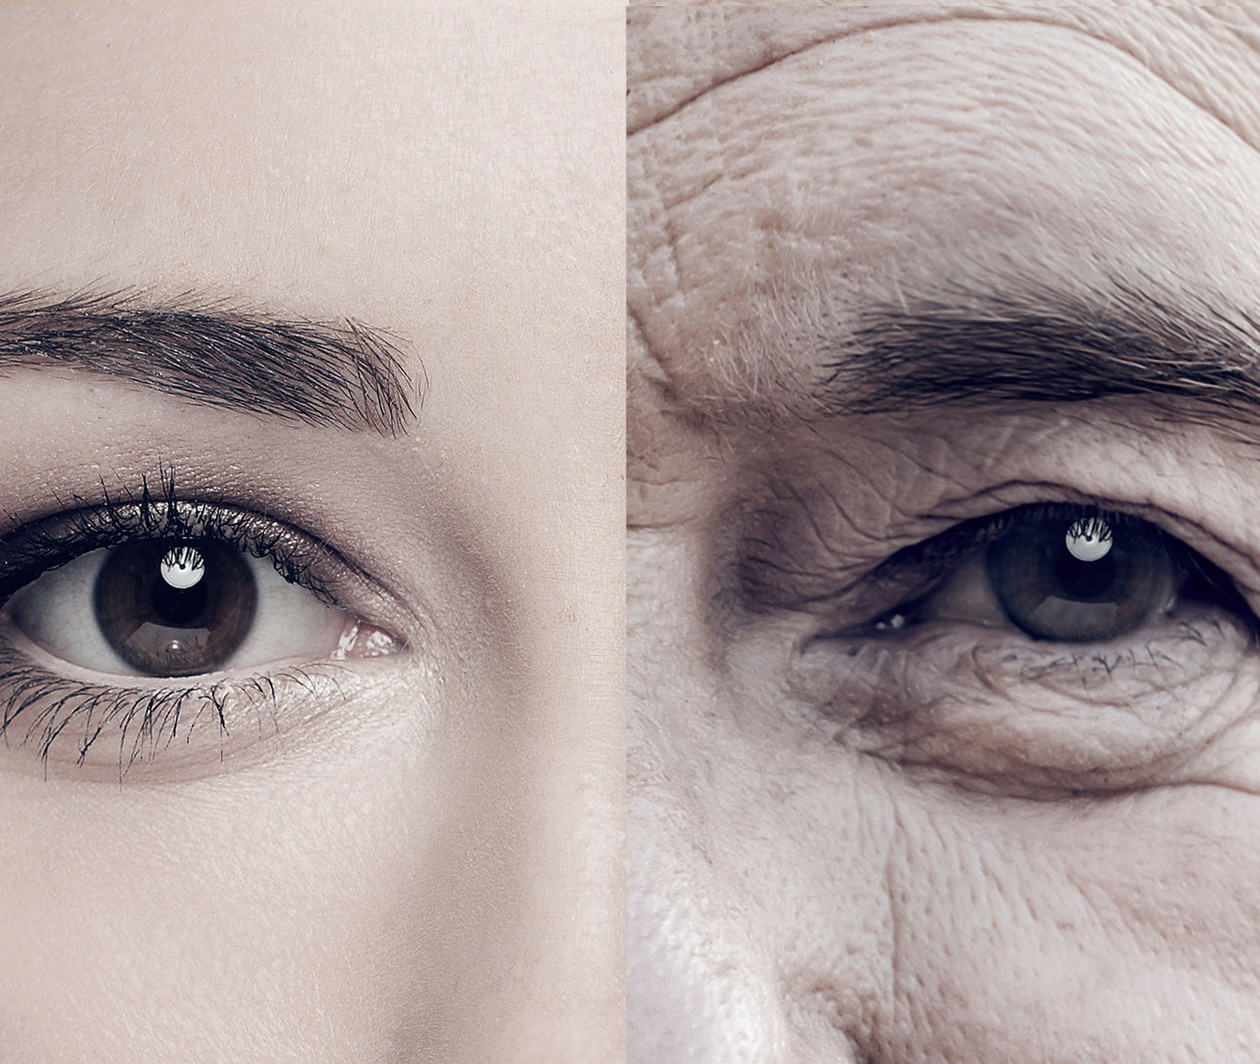 Why Do We Age? The Molecular Mechanisms of Ageing